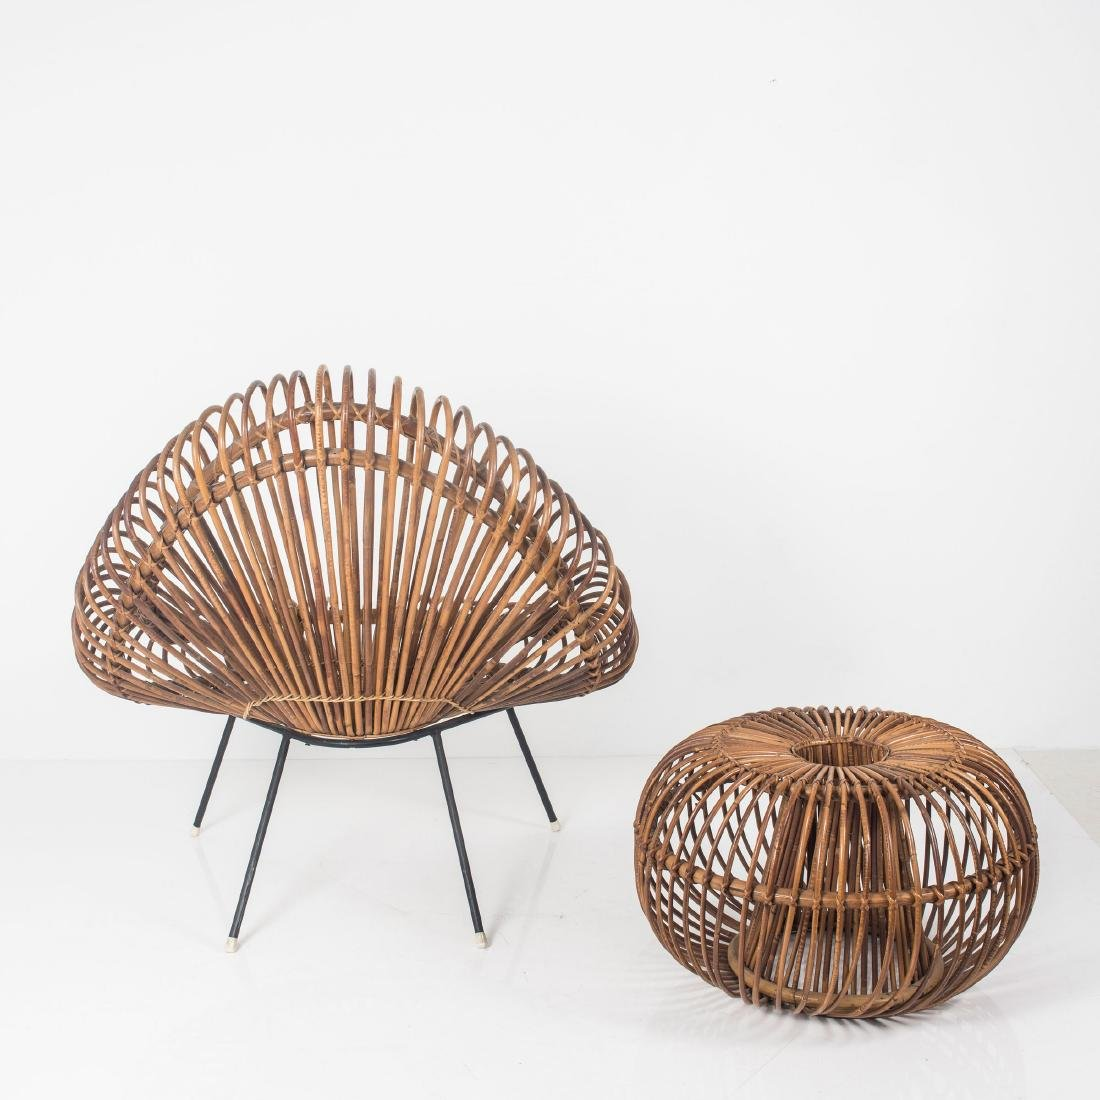 Wicker chair and ottoman, c. 1955 - 5